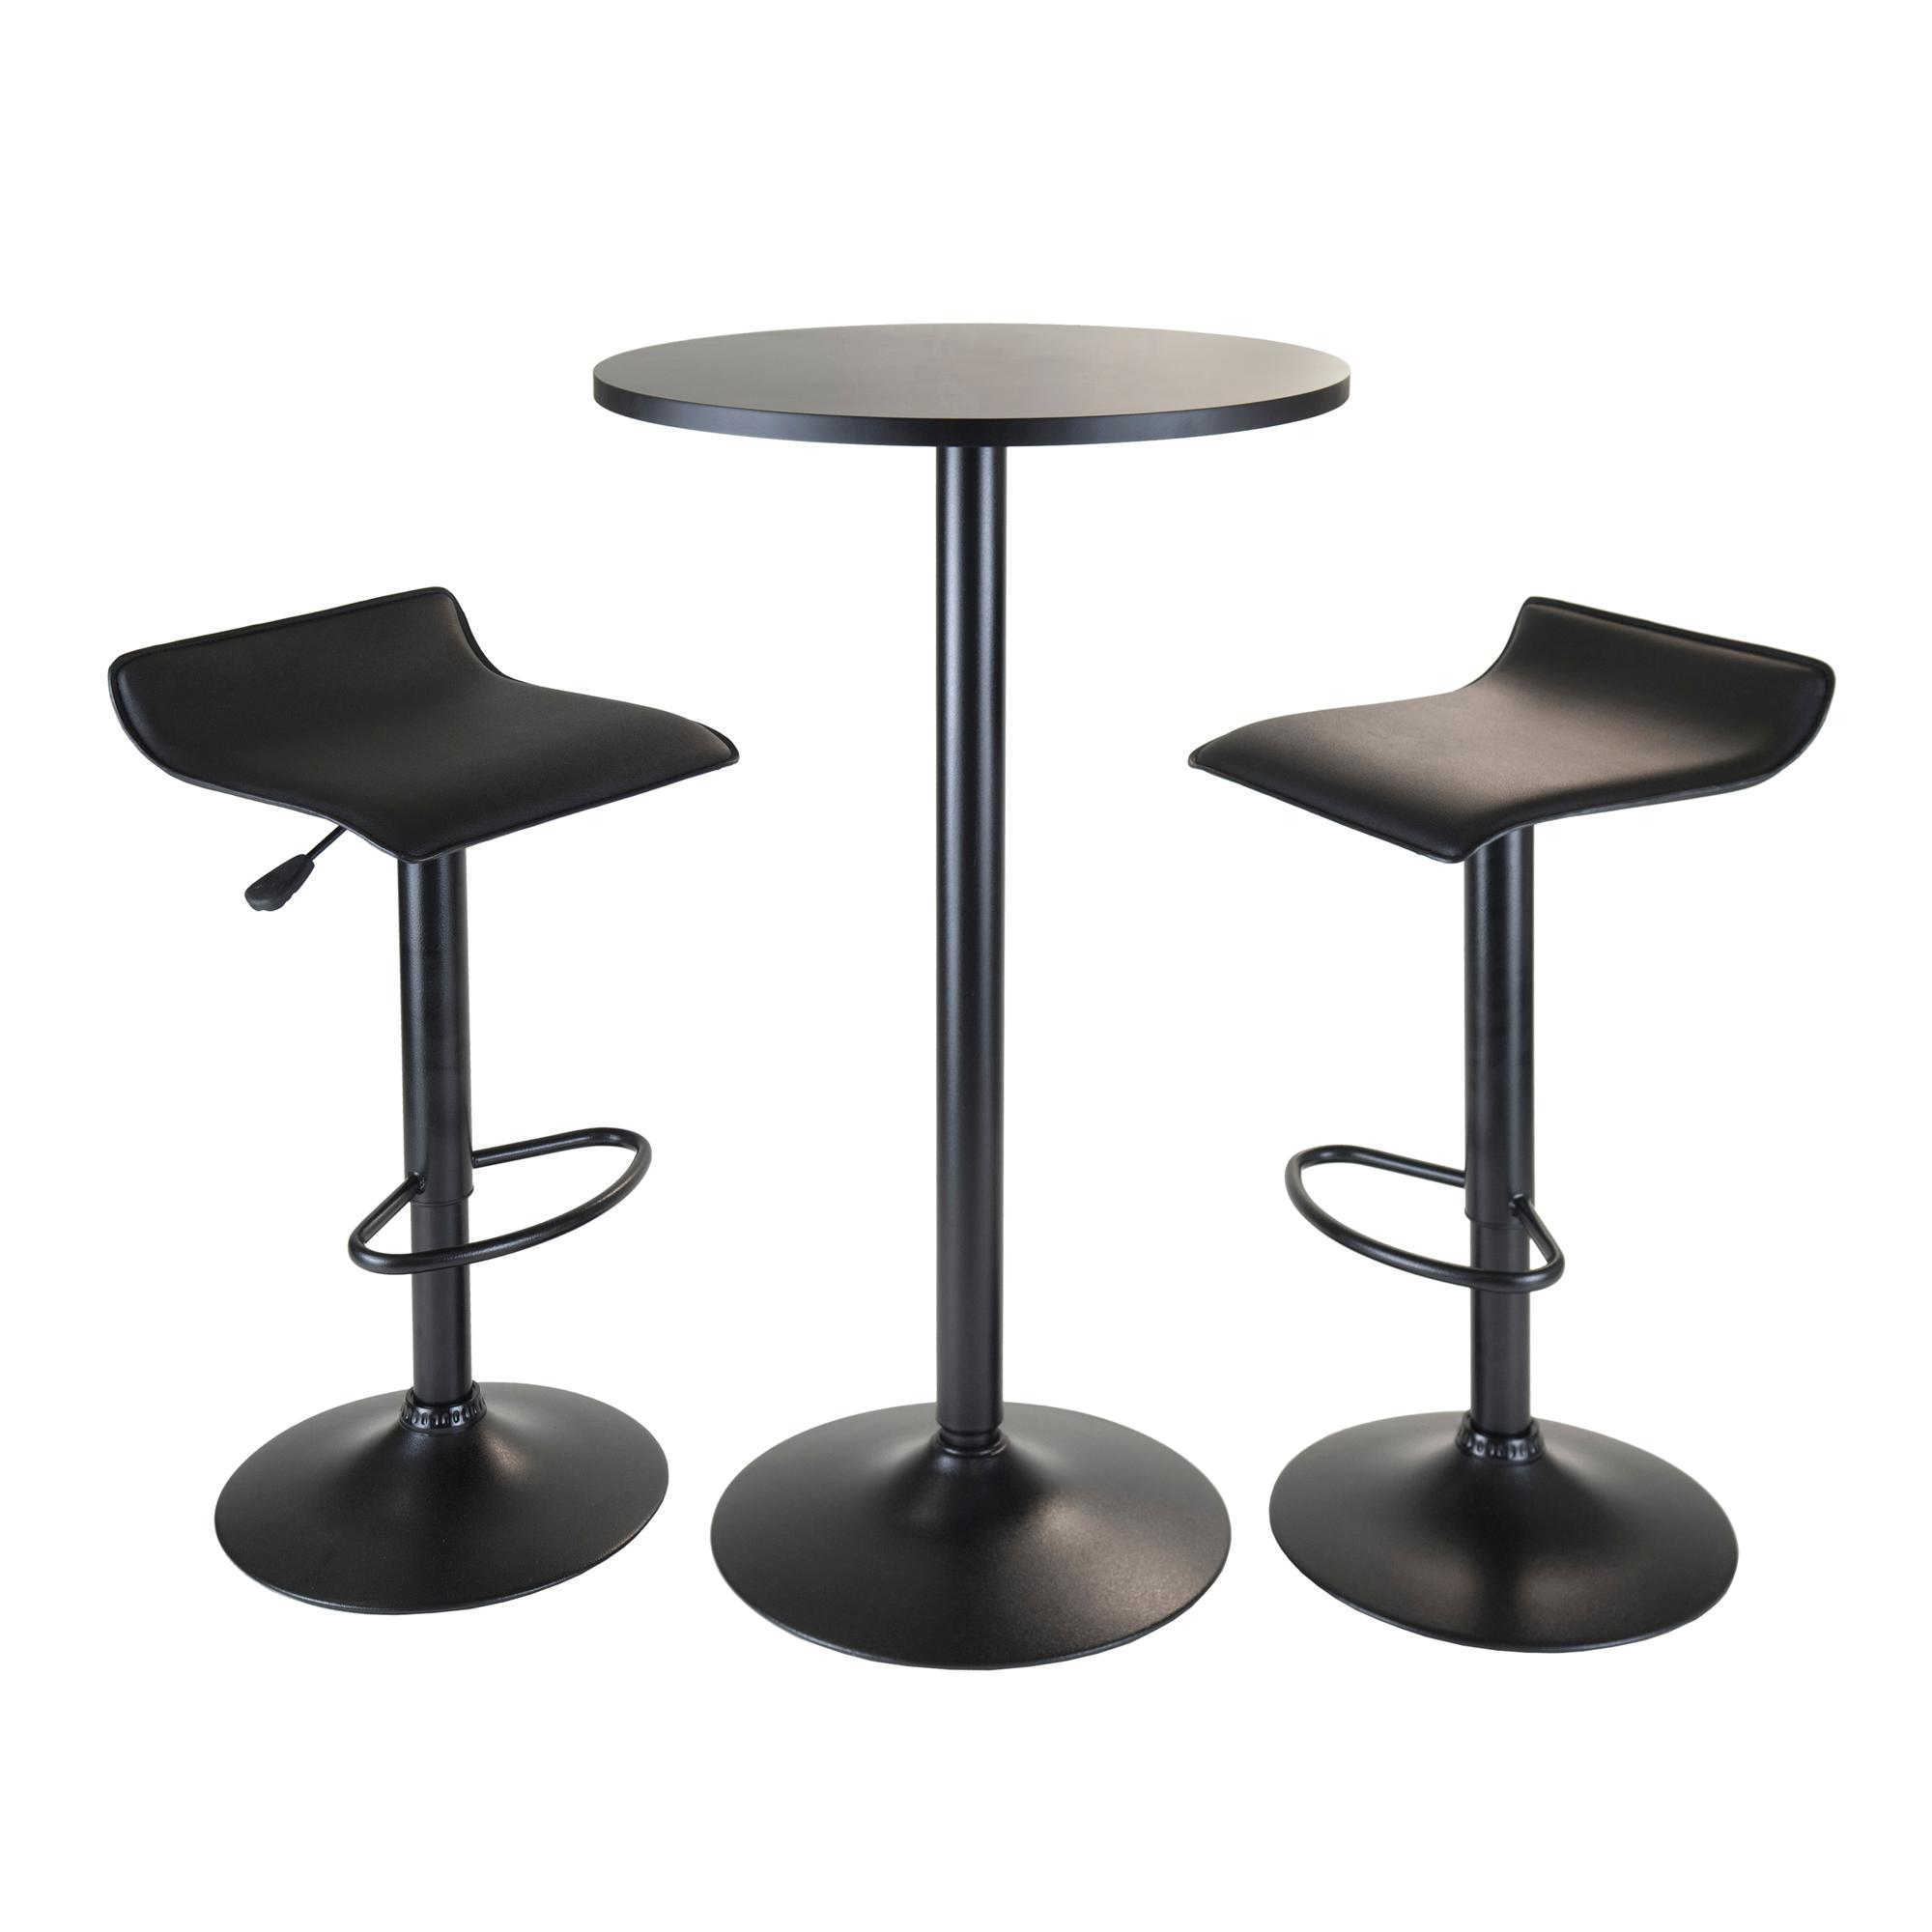 High Table With Stools: Amazon.com: Winsome Obsidian 3-Piece Pub Set With Round